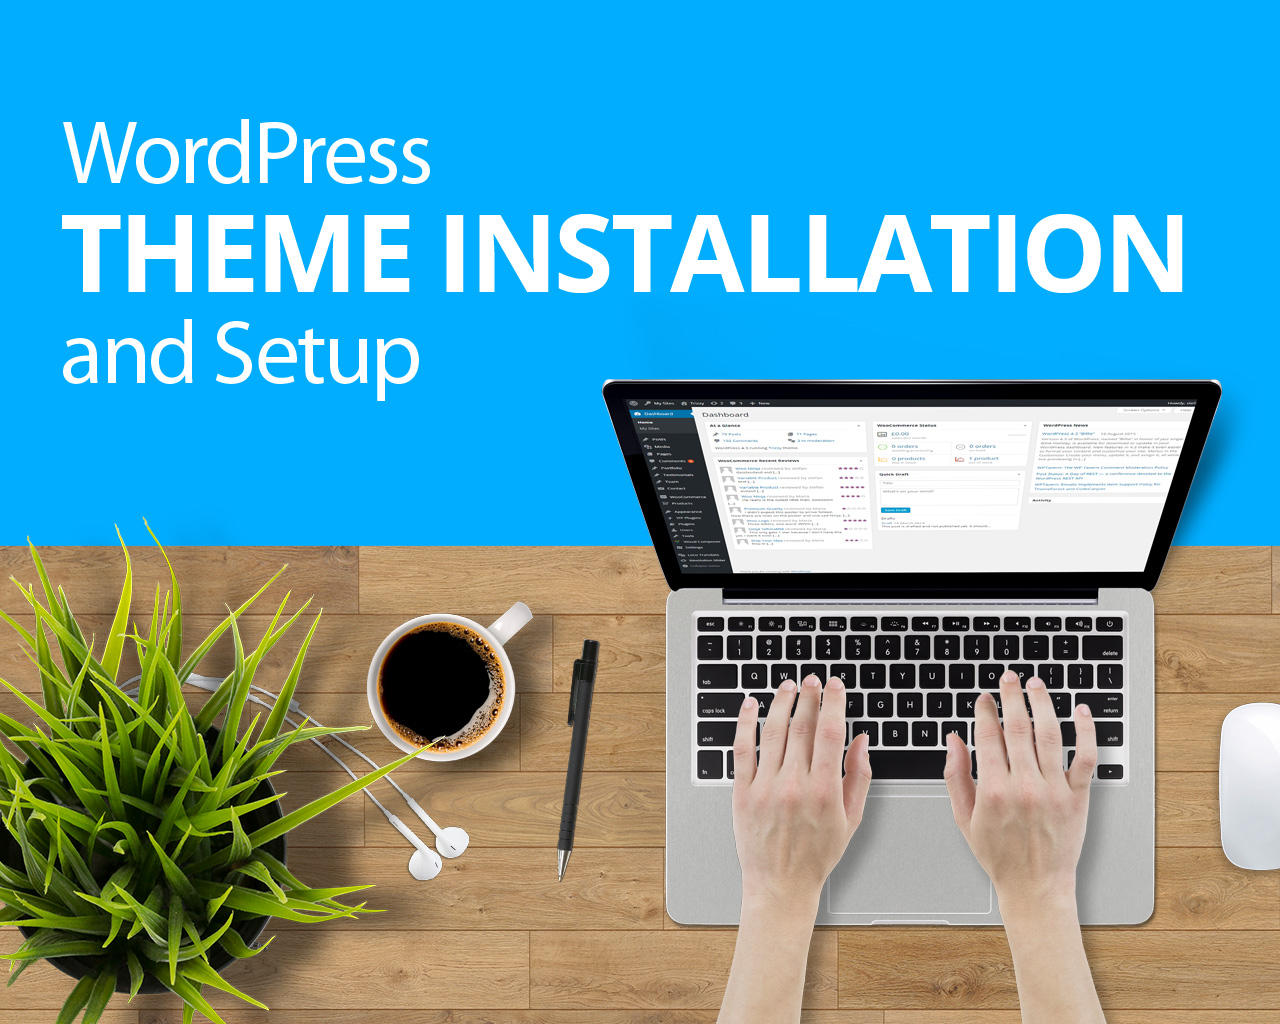 WordPress Theme Installation and Setup by purethemes - 87299